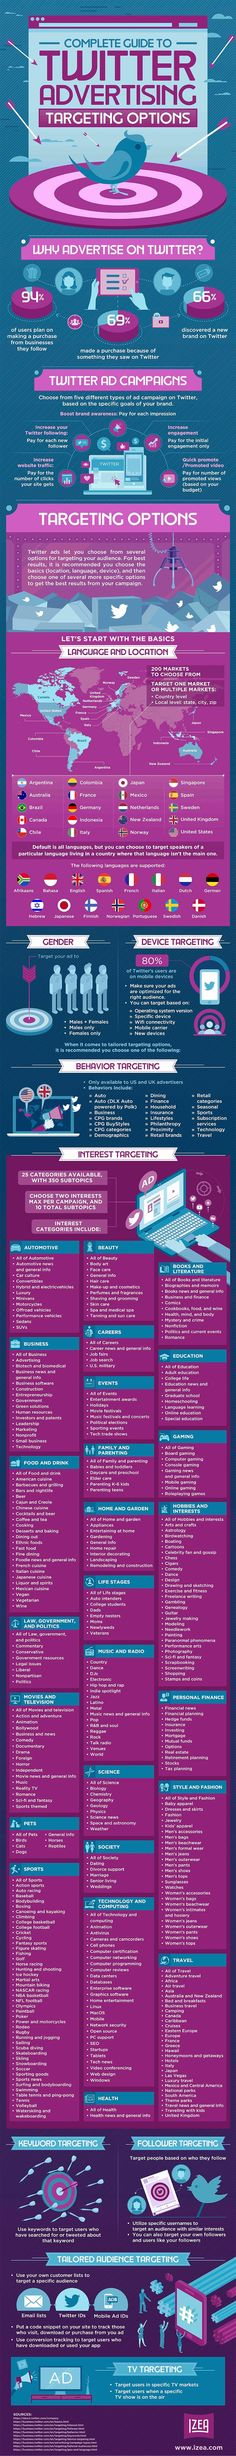 A Complete Guide to Twitter Advertising Targeting Options [Infographic] - http://topseosoft.com/a-complete-guide-to-twitter-advertising-targeting-options-infographic/